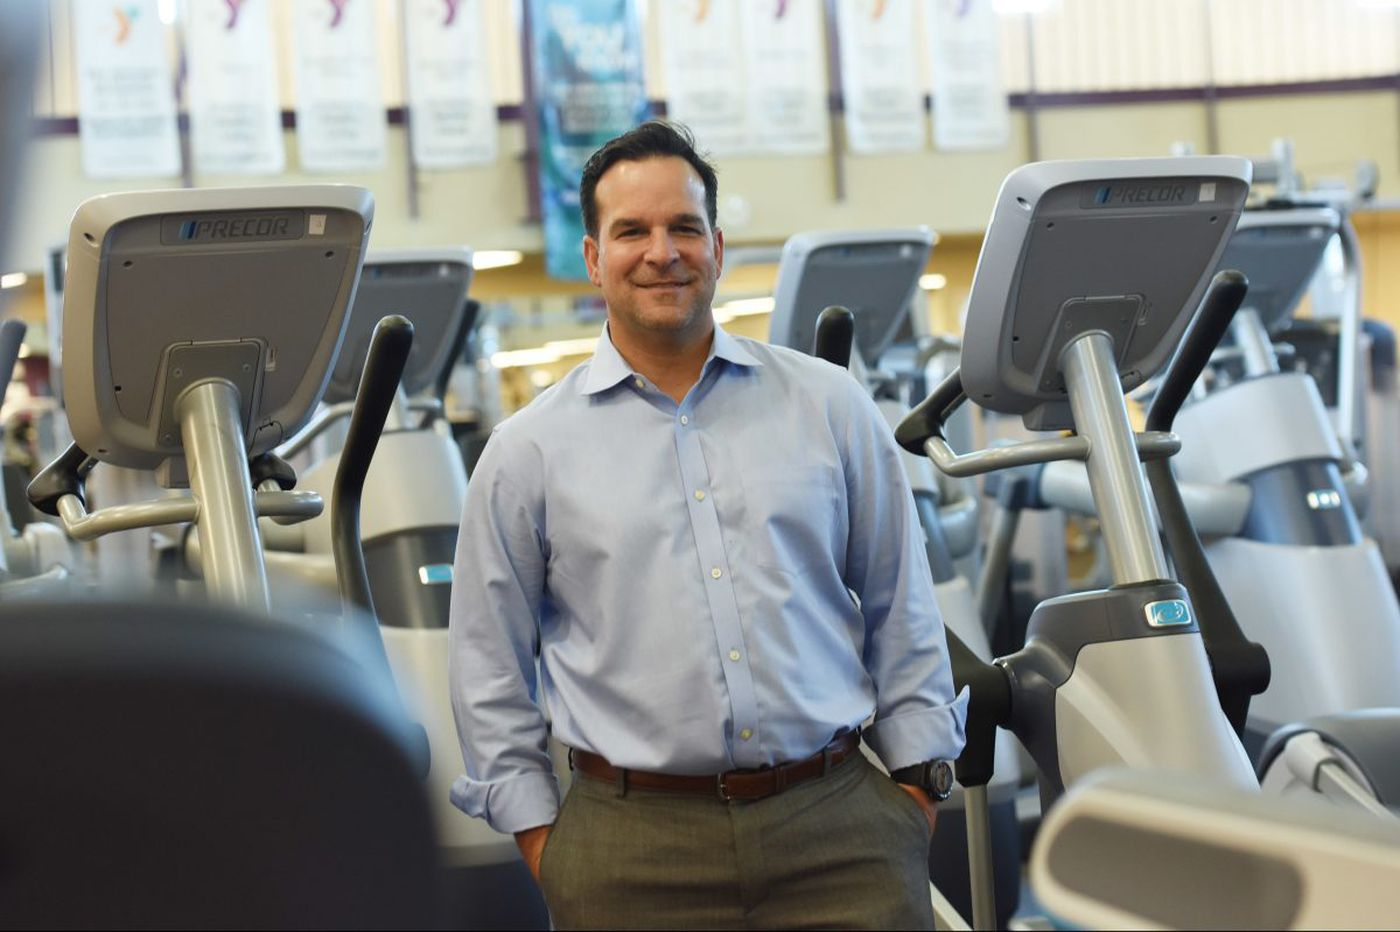 Pottstown took on the YMCA - and won. They're saving themselves along the way. | Maria Panaritis